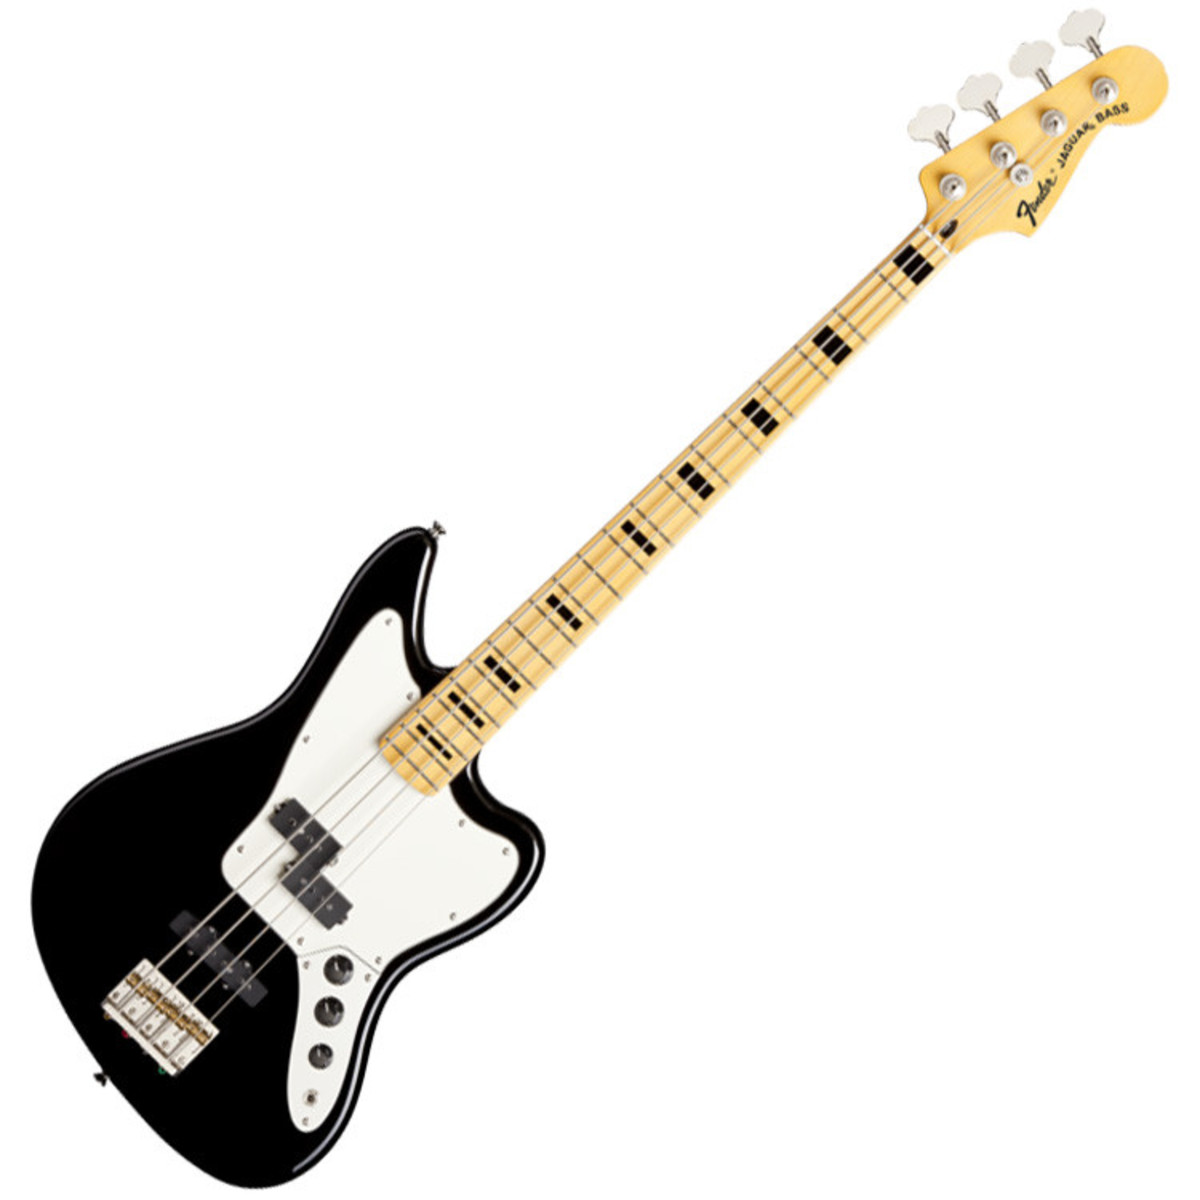 fender modern player jaguar bass guitar black at. Black Bedroom Furniture Sets. Home Design Ideas